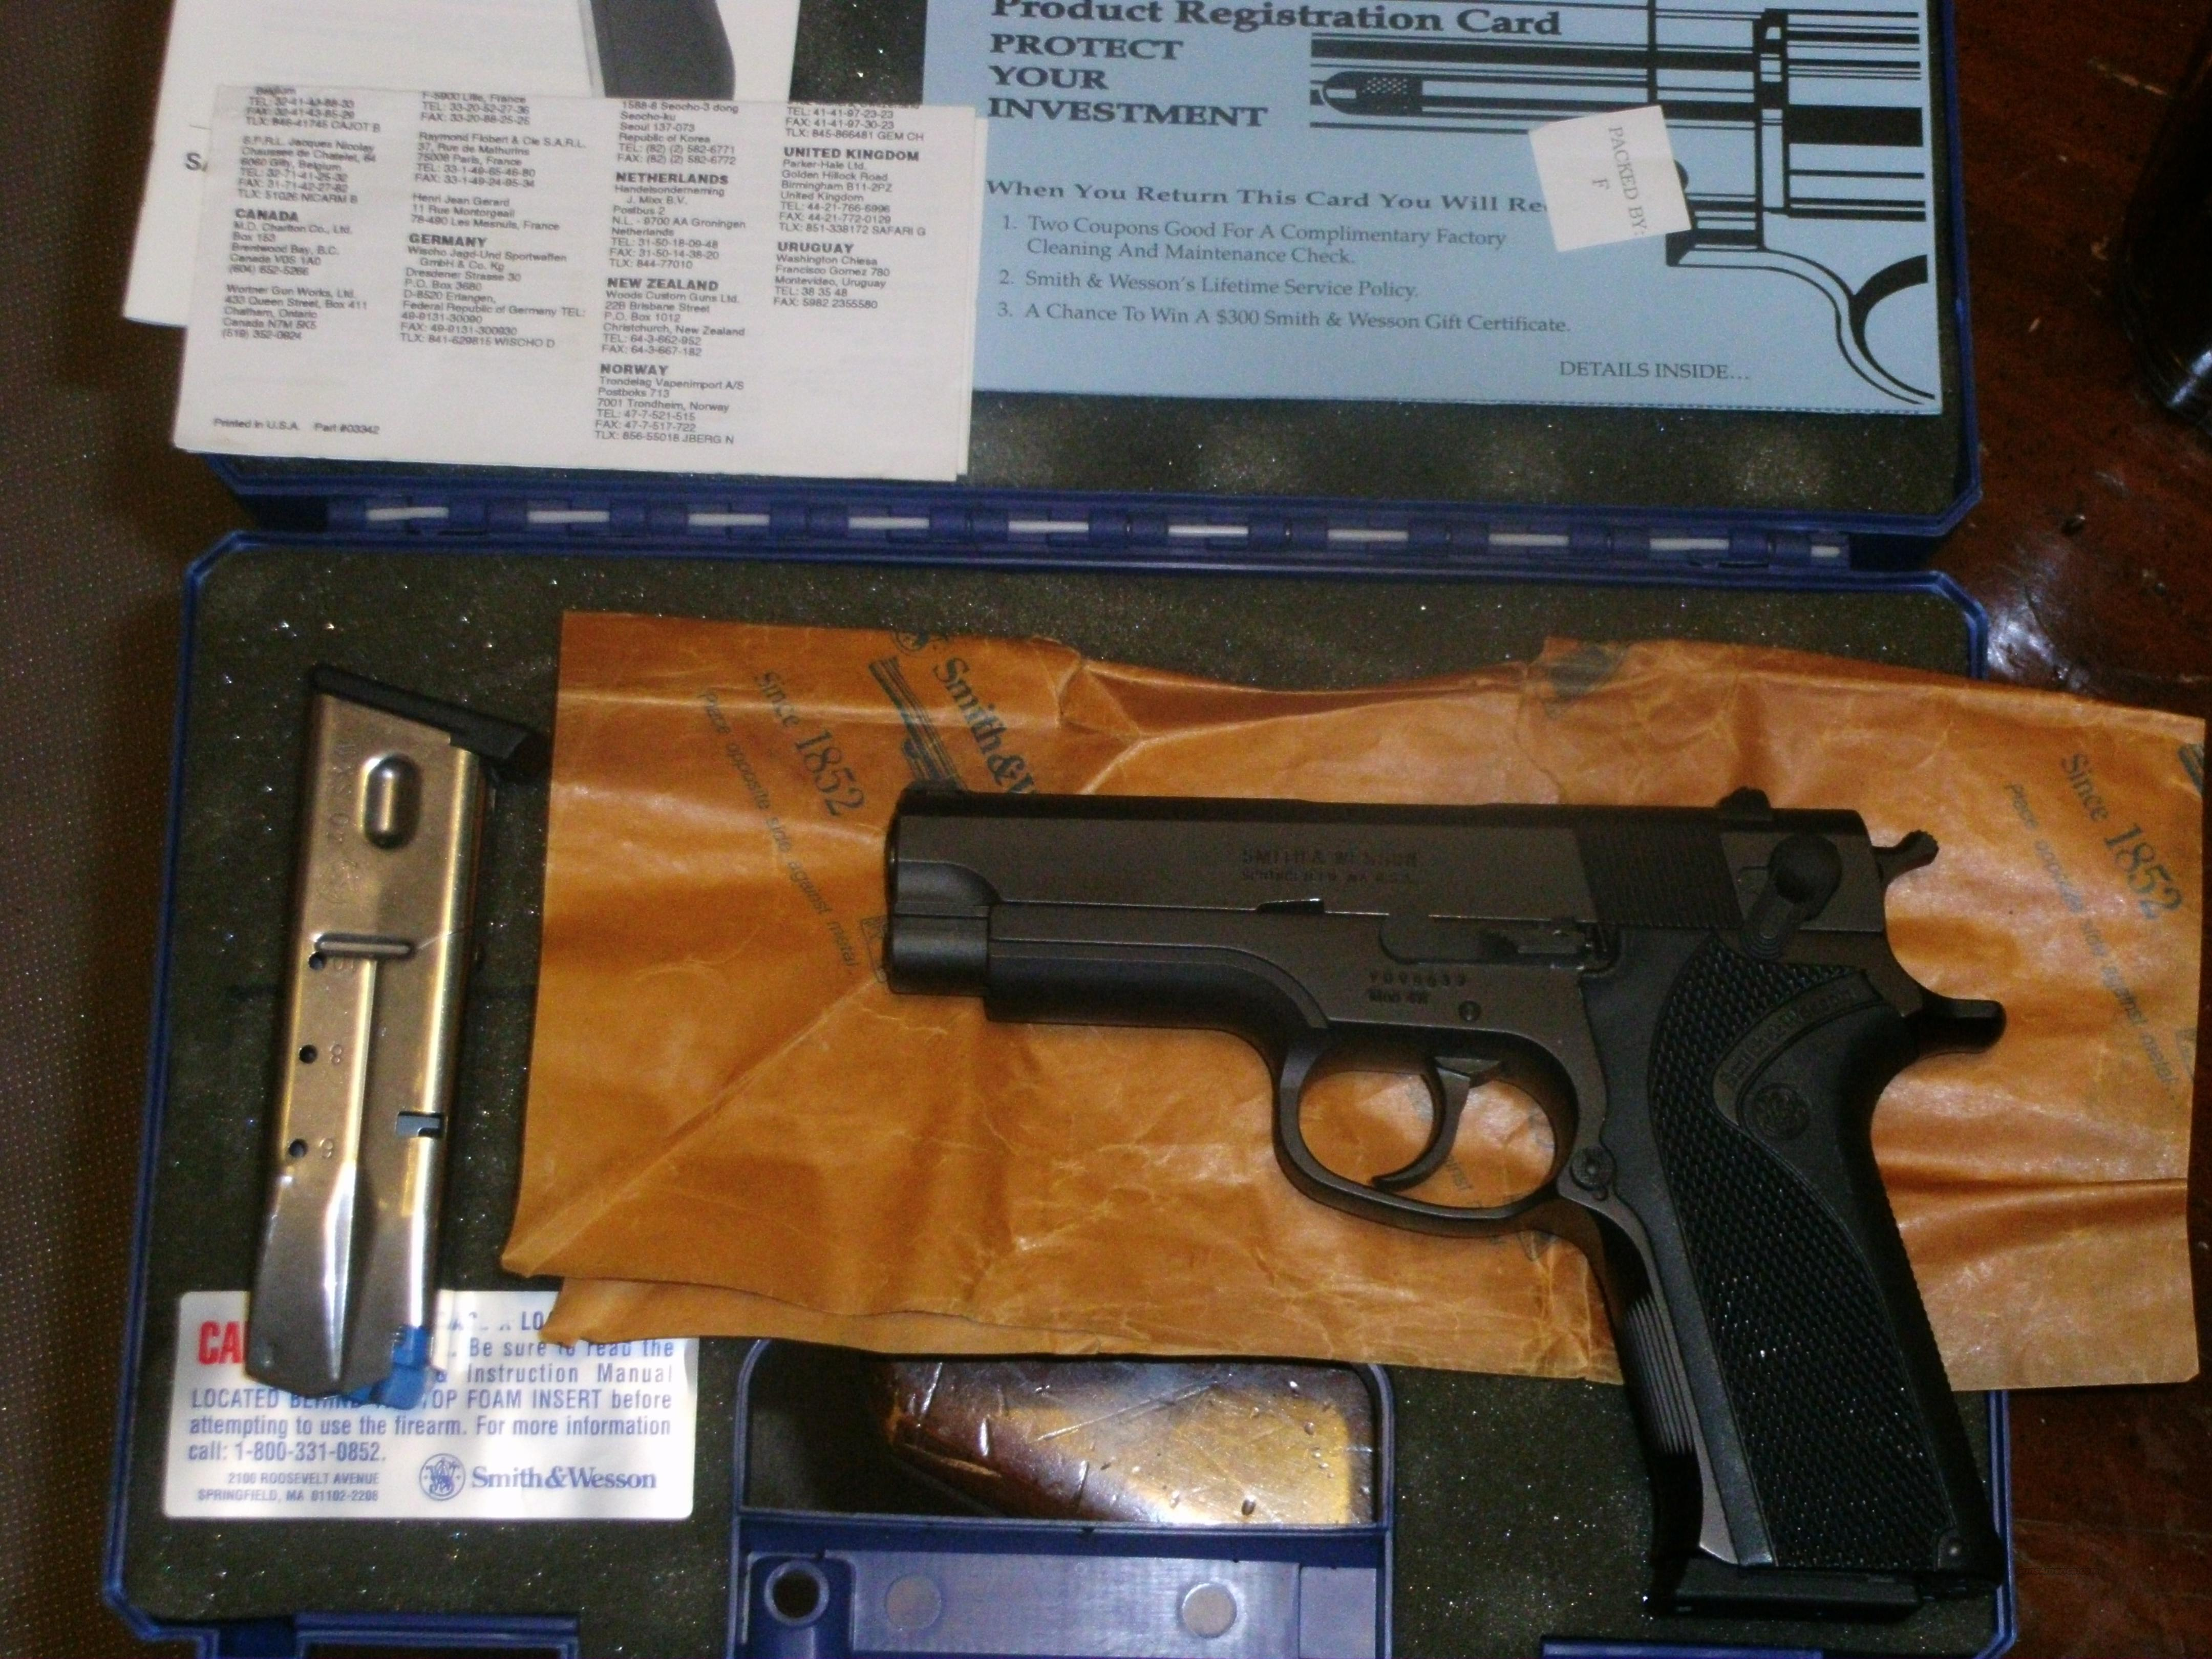 Smith & Wesson model 411  Guns > Pistols > Smith & Wesson Pistols - Autos > Steel Frame